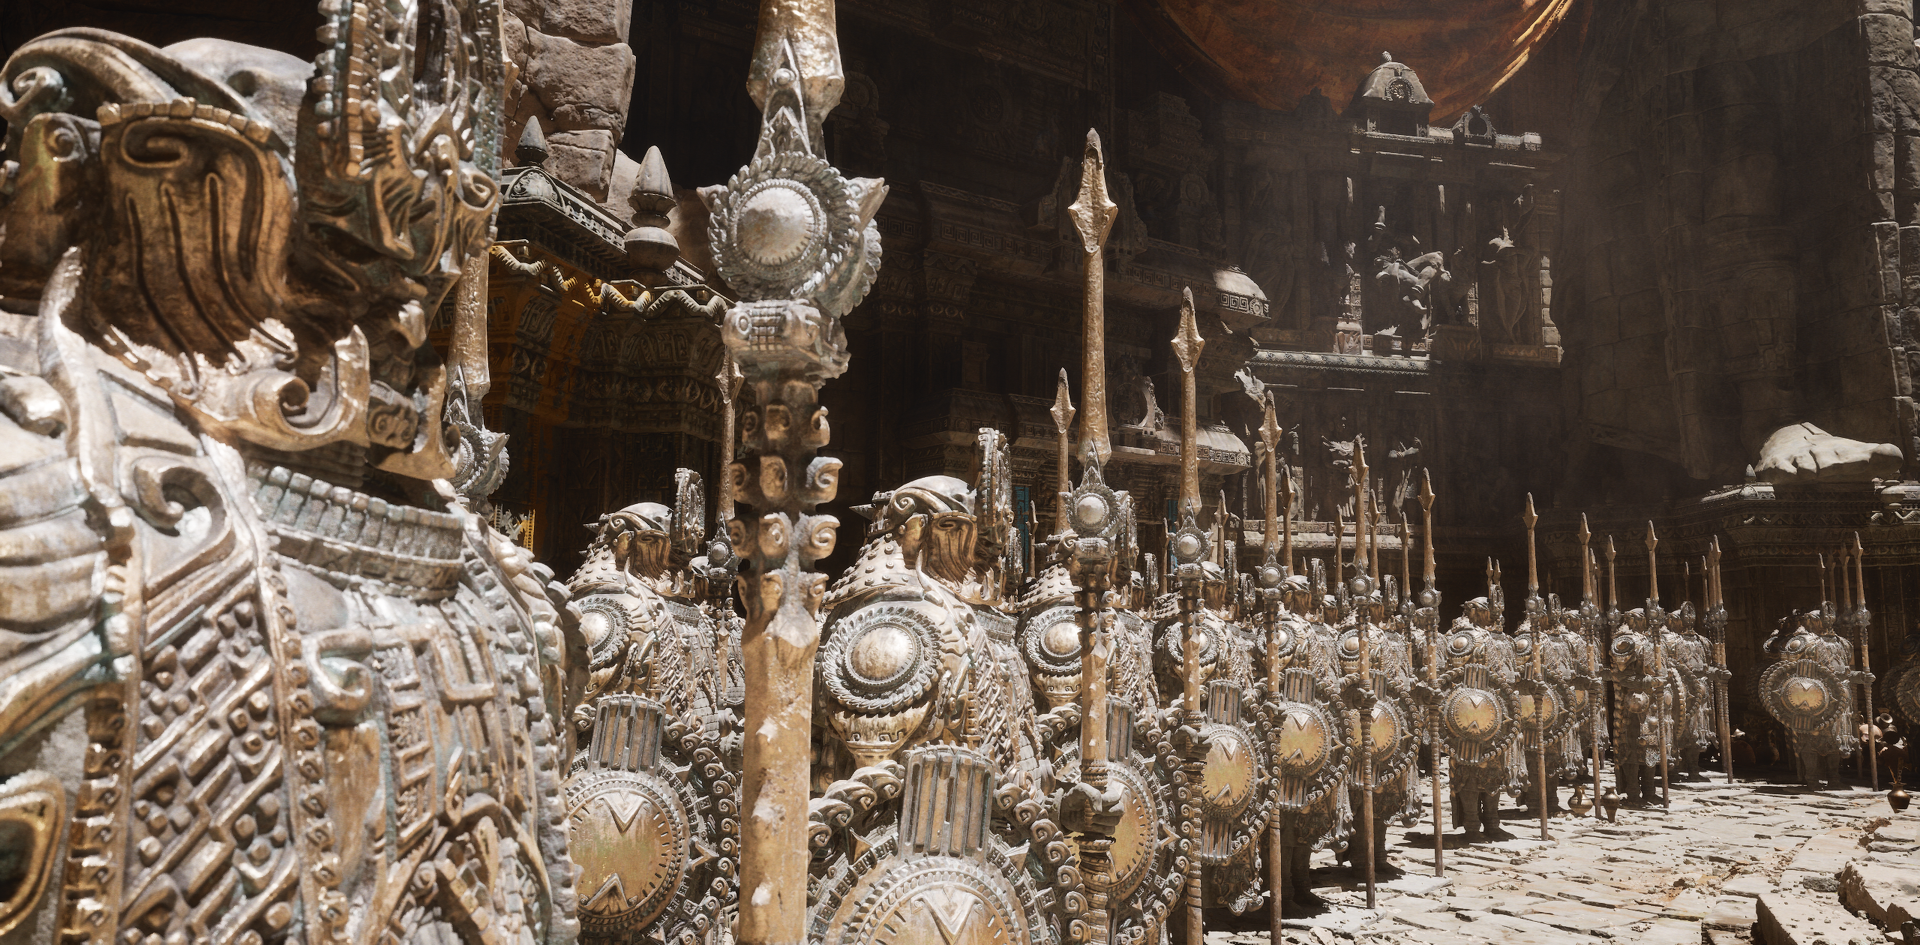 Epic Games has announced a new engine - Unreal Engine 5 10